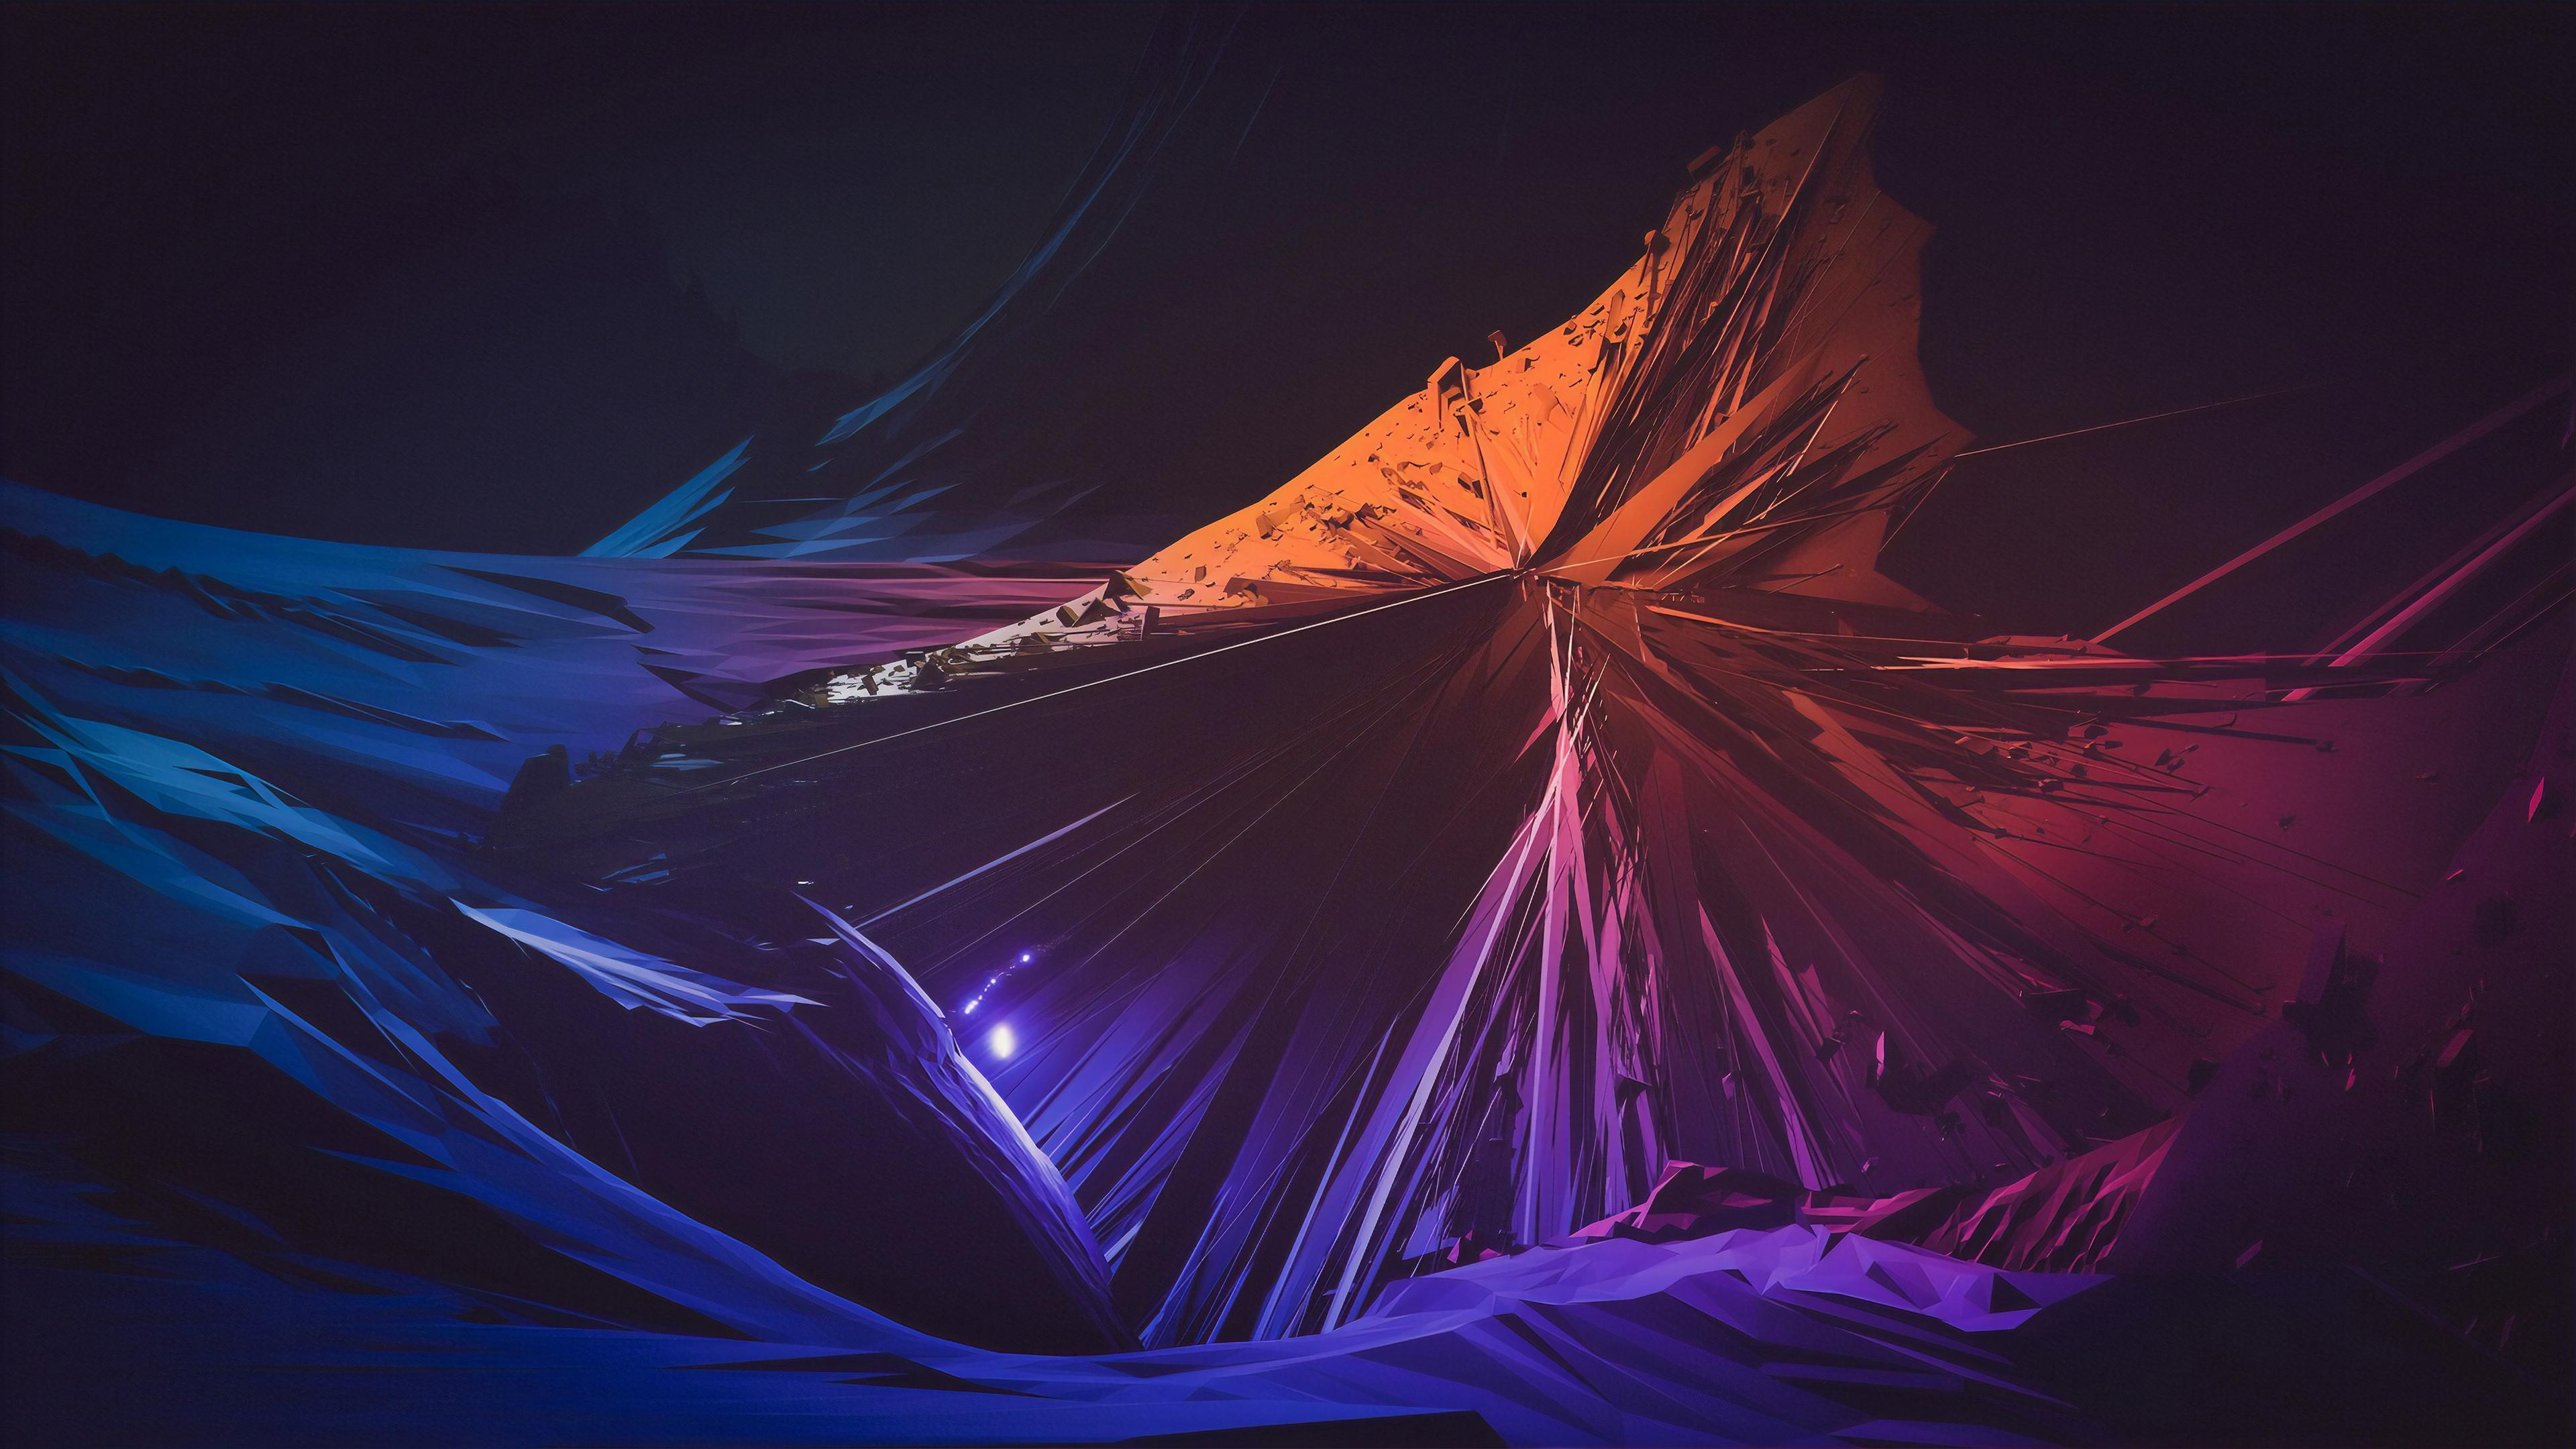 Abstract Shapes 4K Wallpapers